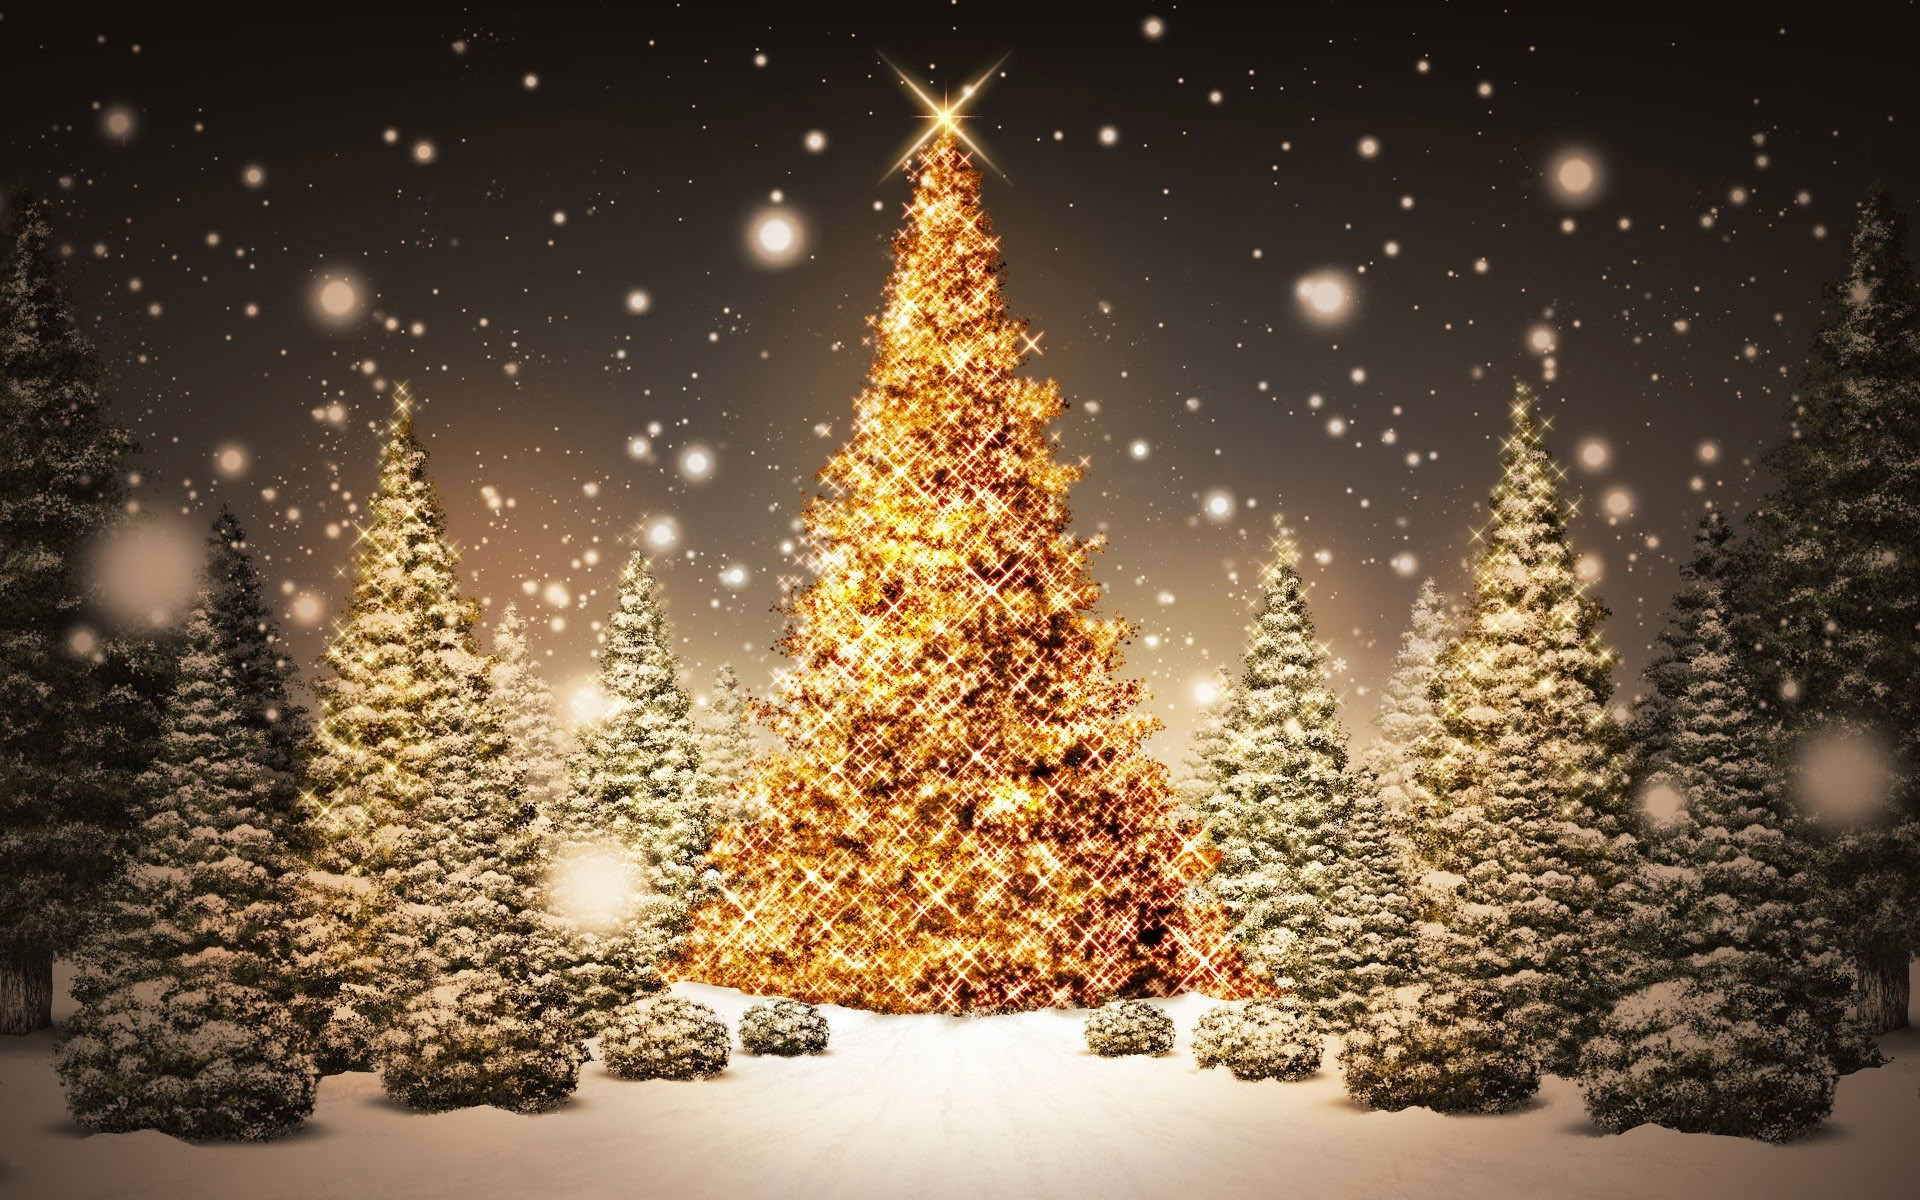 Wallpaper Christmas trees with flashes of golden lights